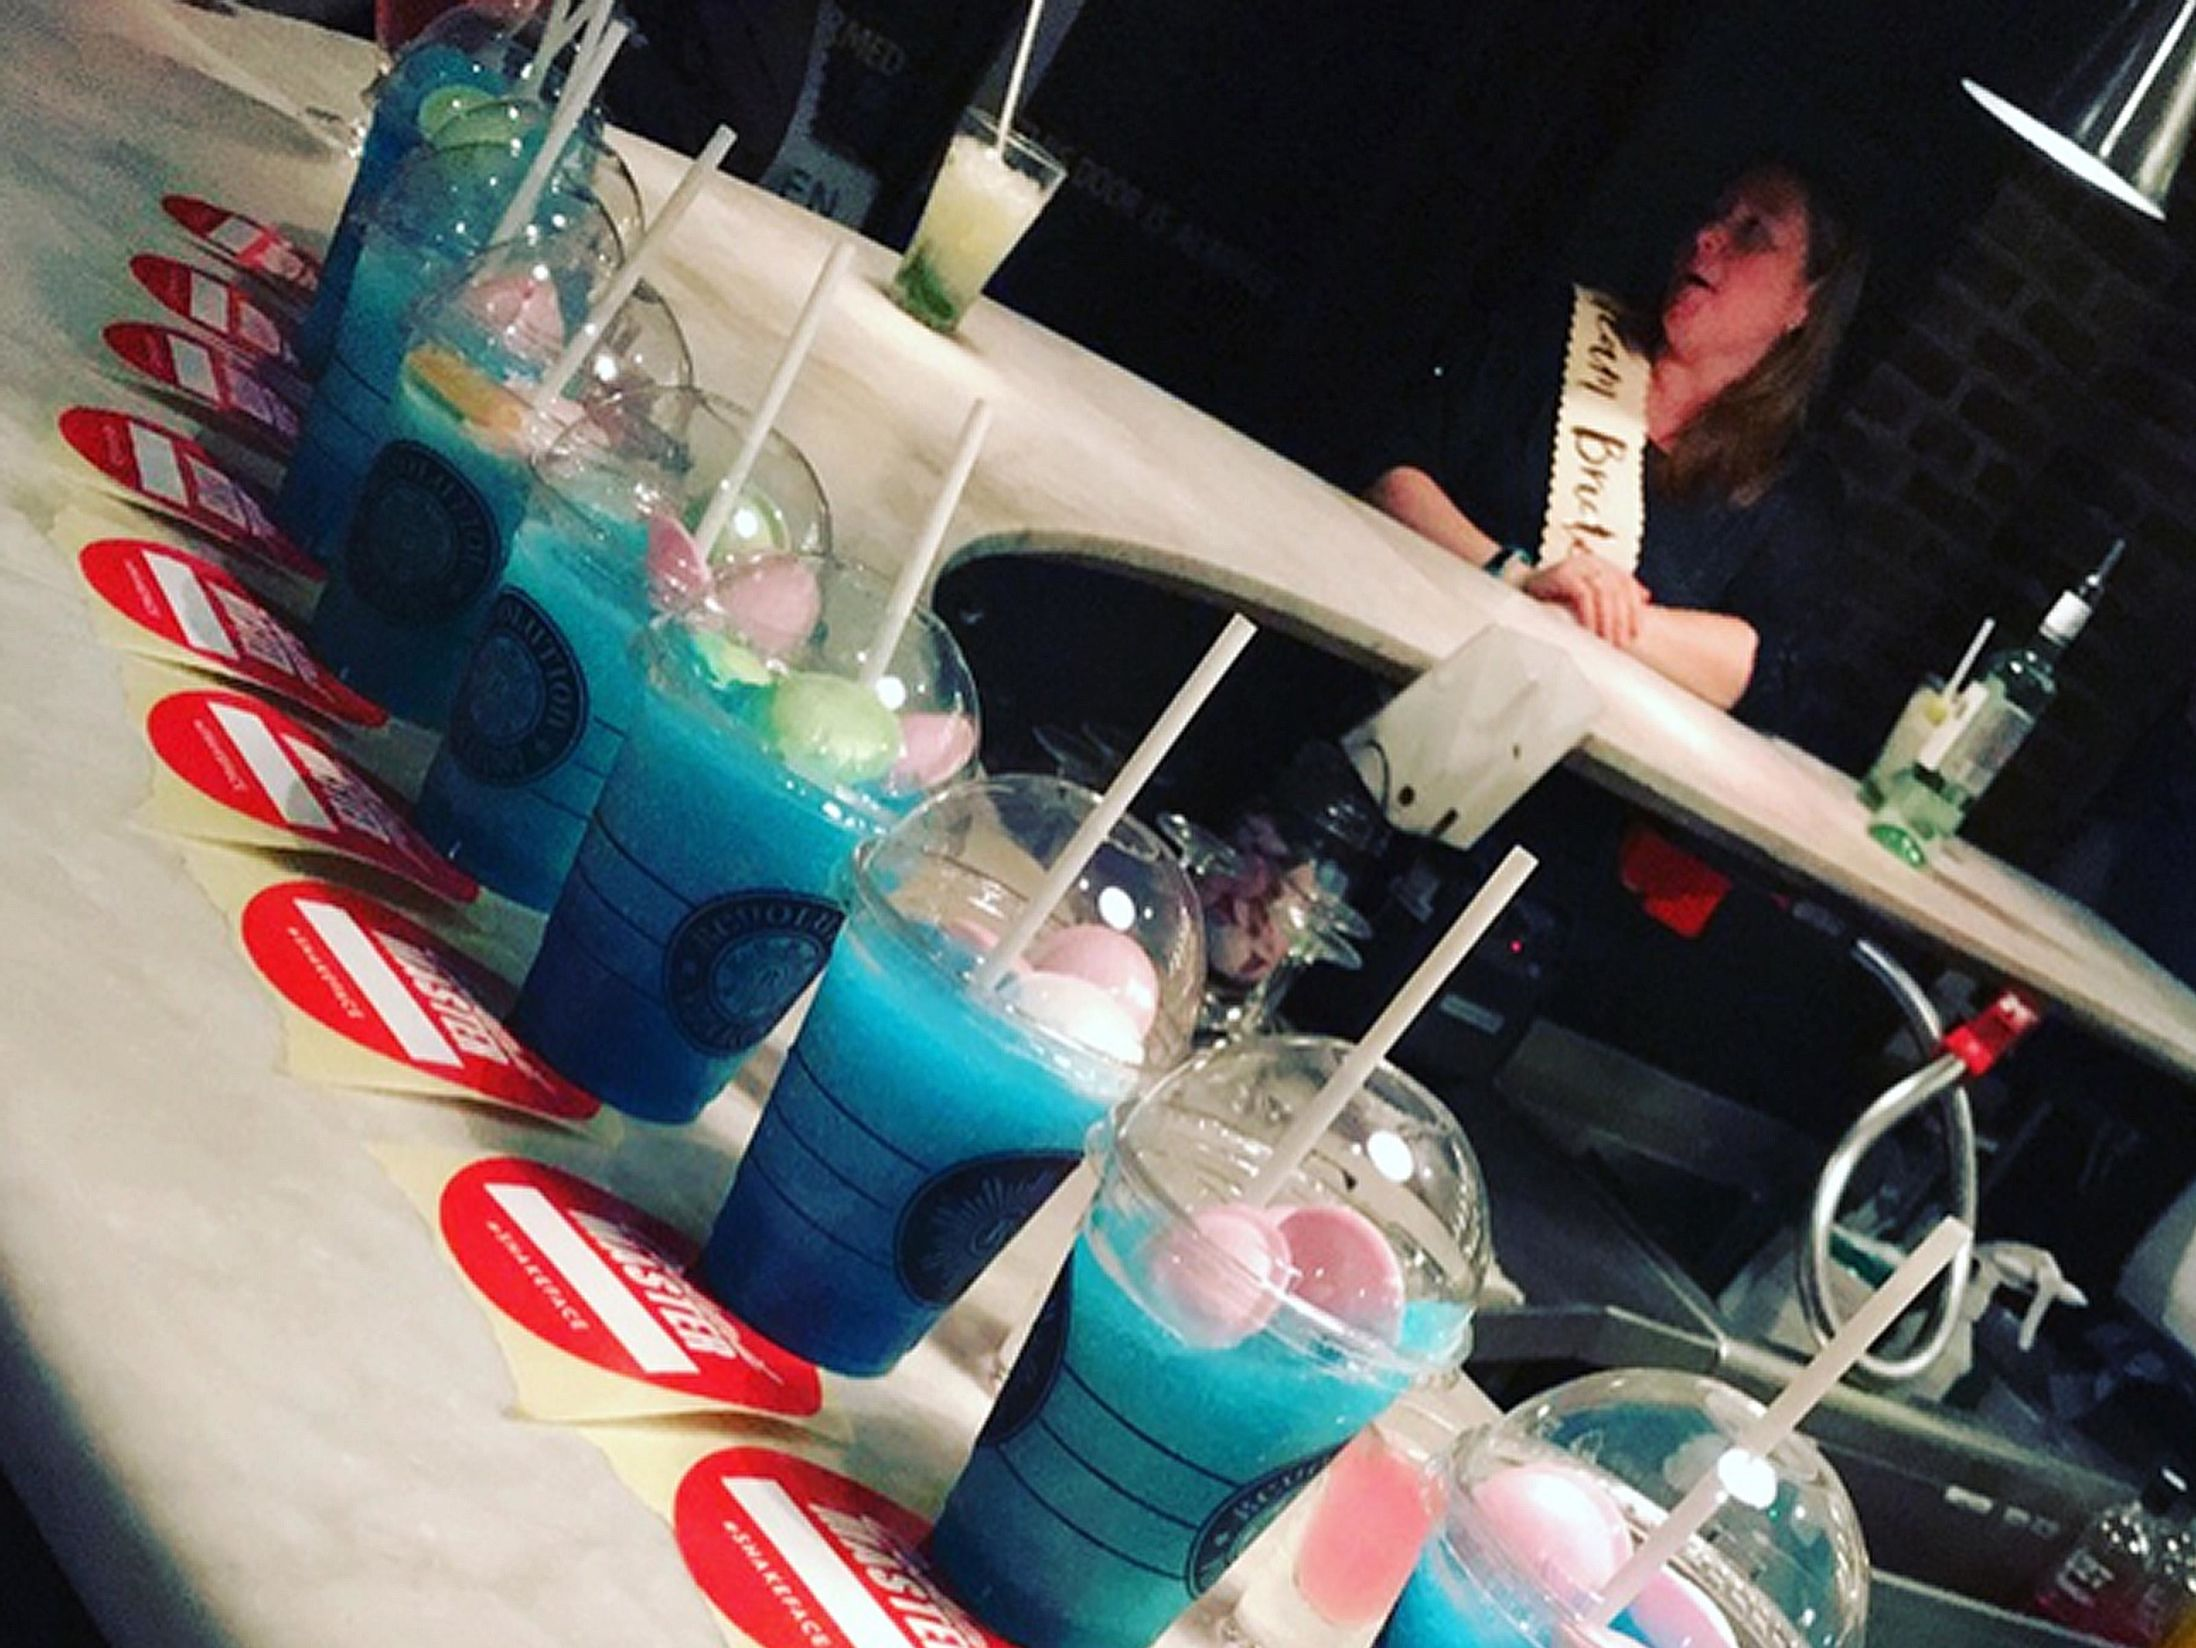 Hen Party Ideas for Mixed Ages - Cocktail Making Class